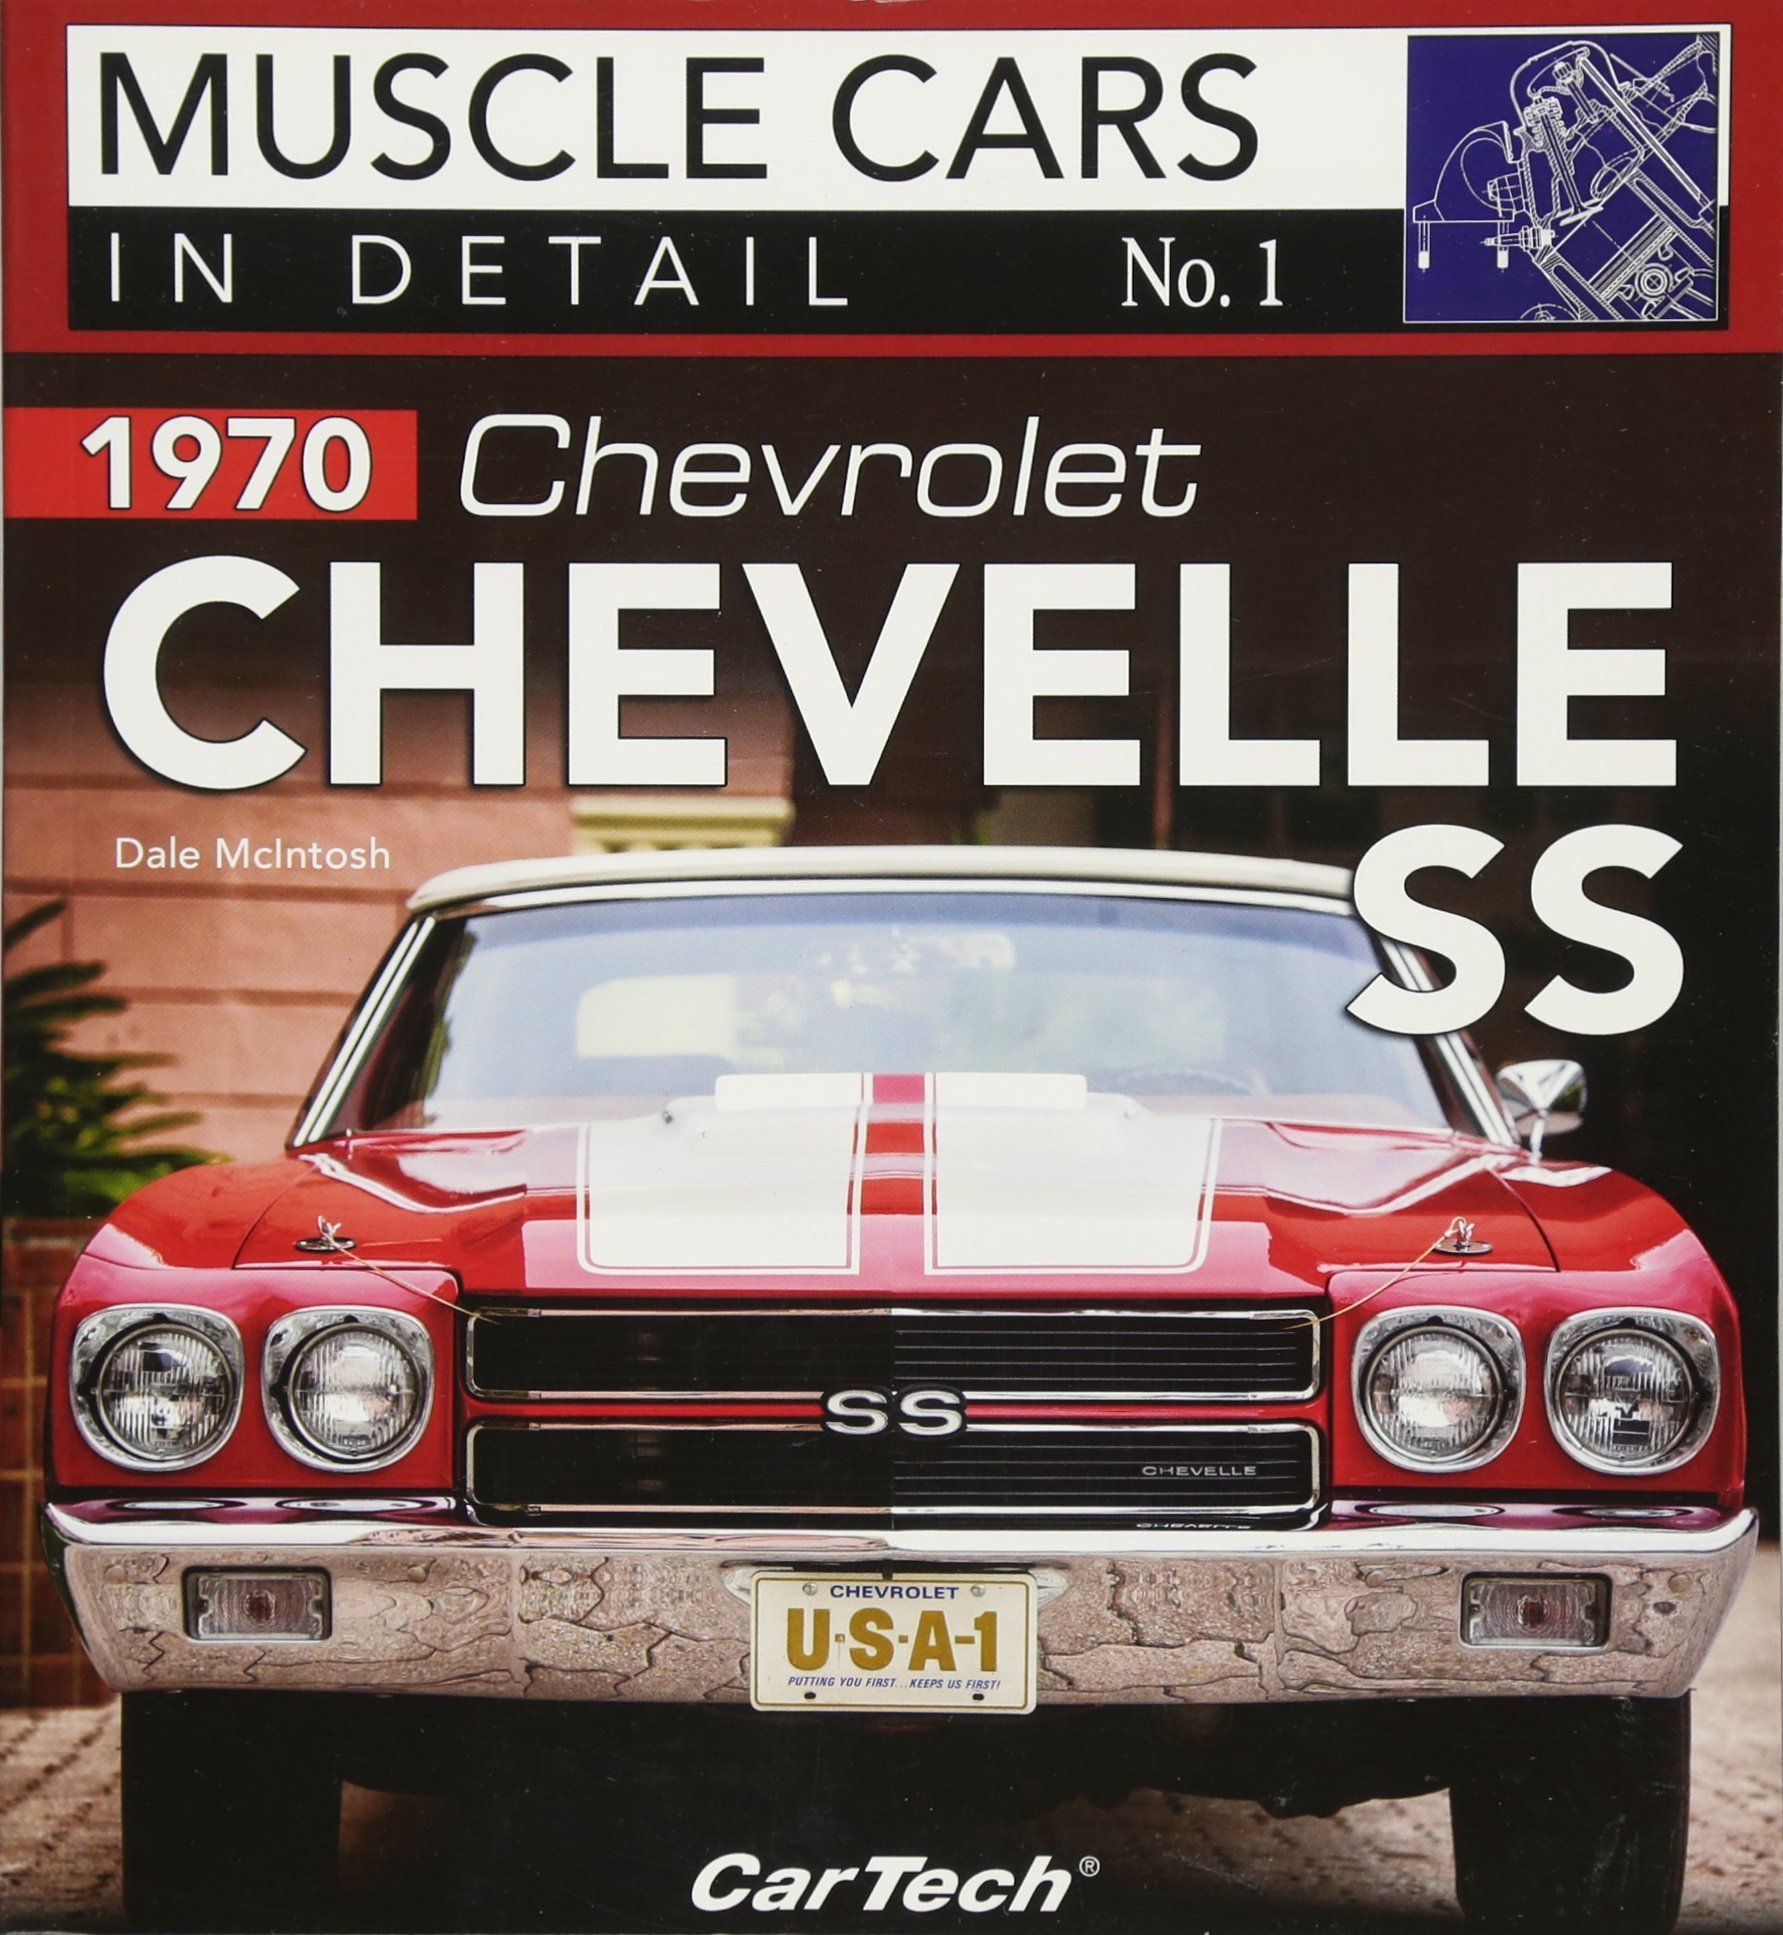 f037dd30 1970 Chevrolet Chevelle SS: Muscle Cars In Detail No. 1: Dale McIntosh:  9781613253175: Amazon.com: Books